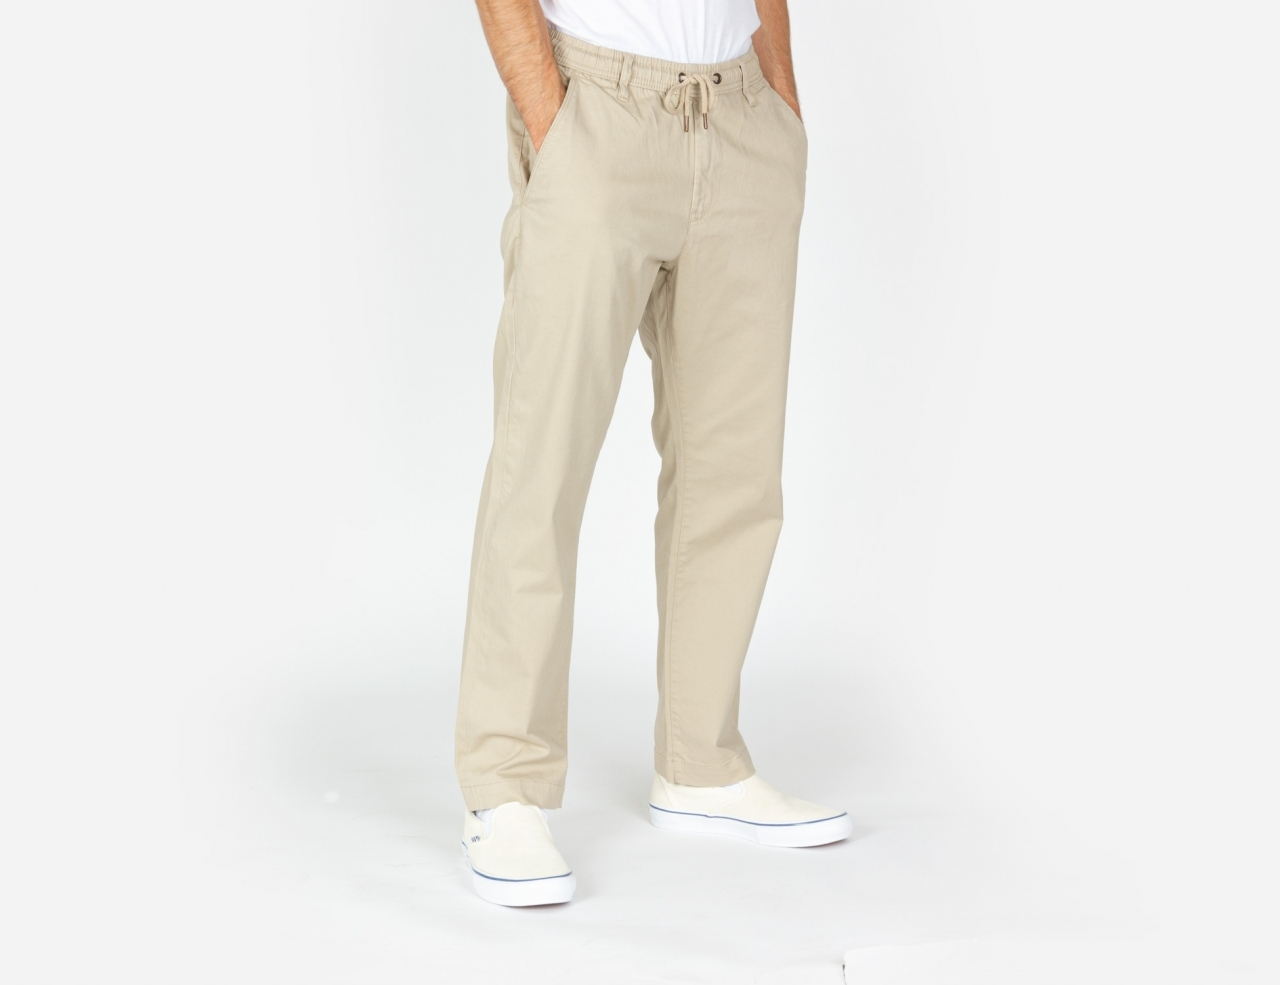 Reell Jeans Reflex Loose Chino Pant - Light Beige